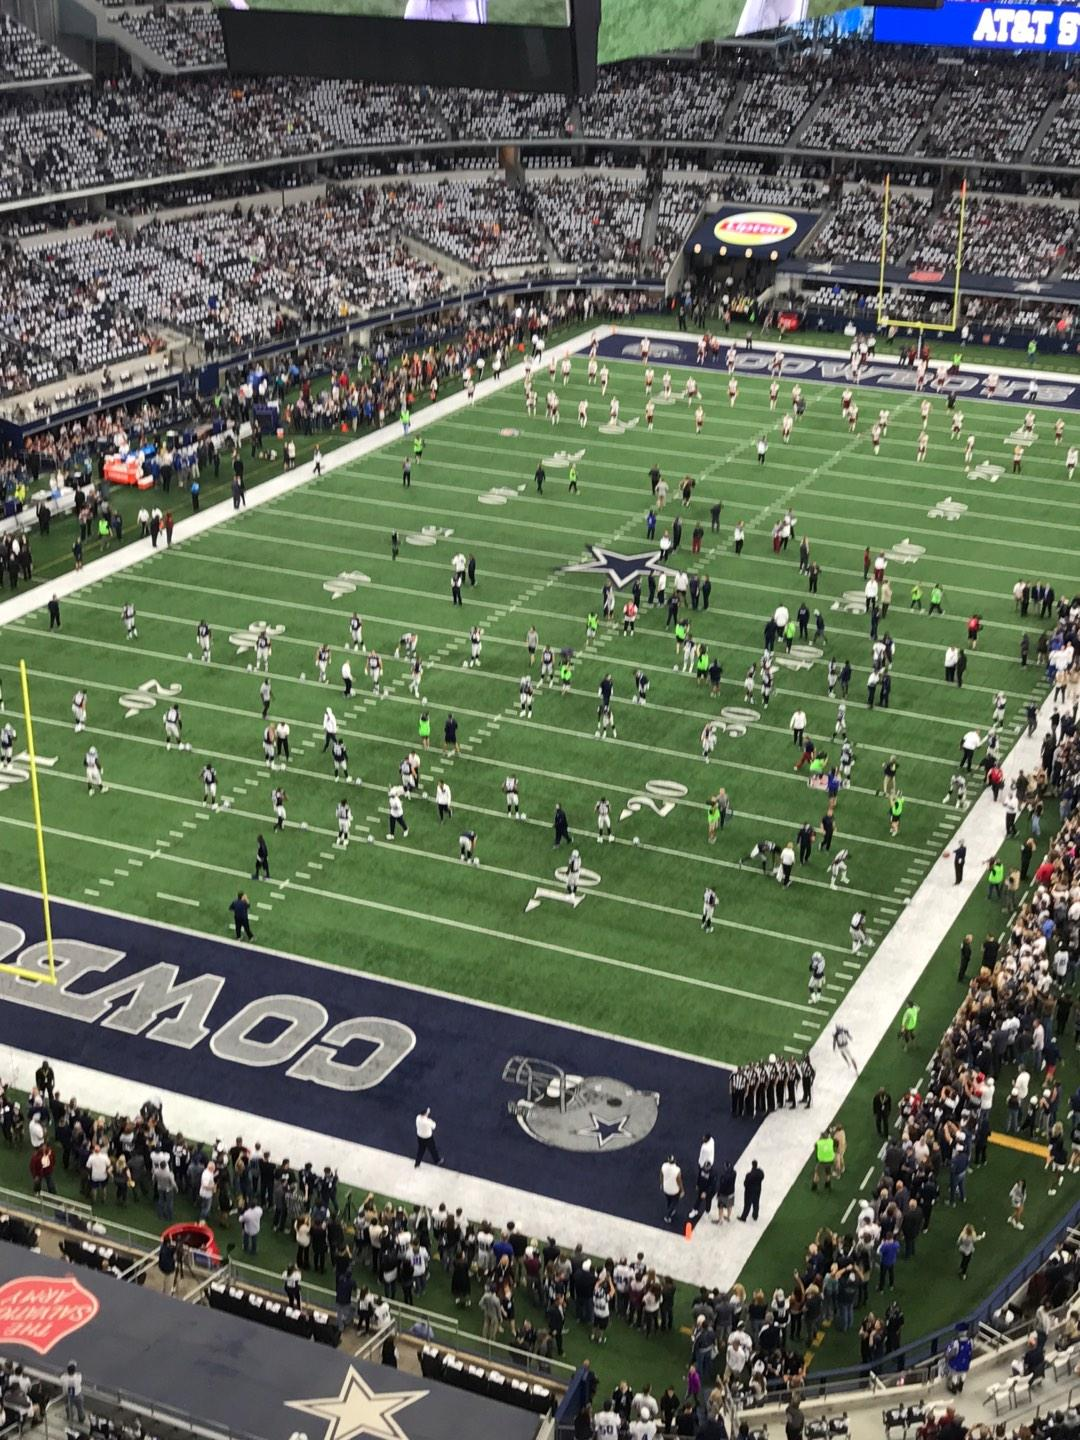 AT&T Stadium Section 423 Row 1 Seat 6